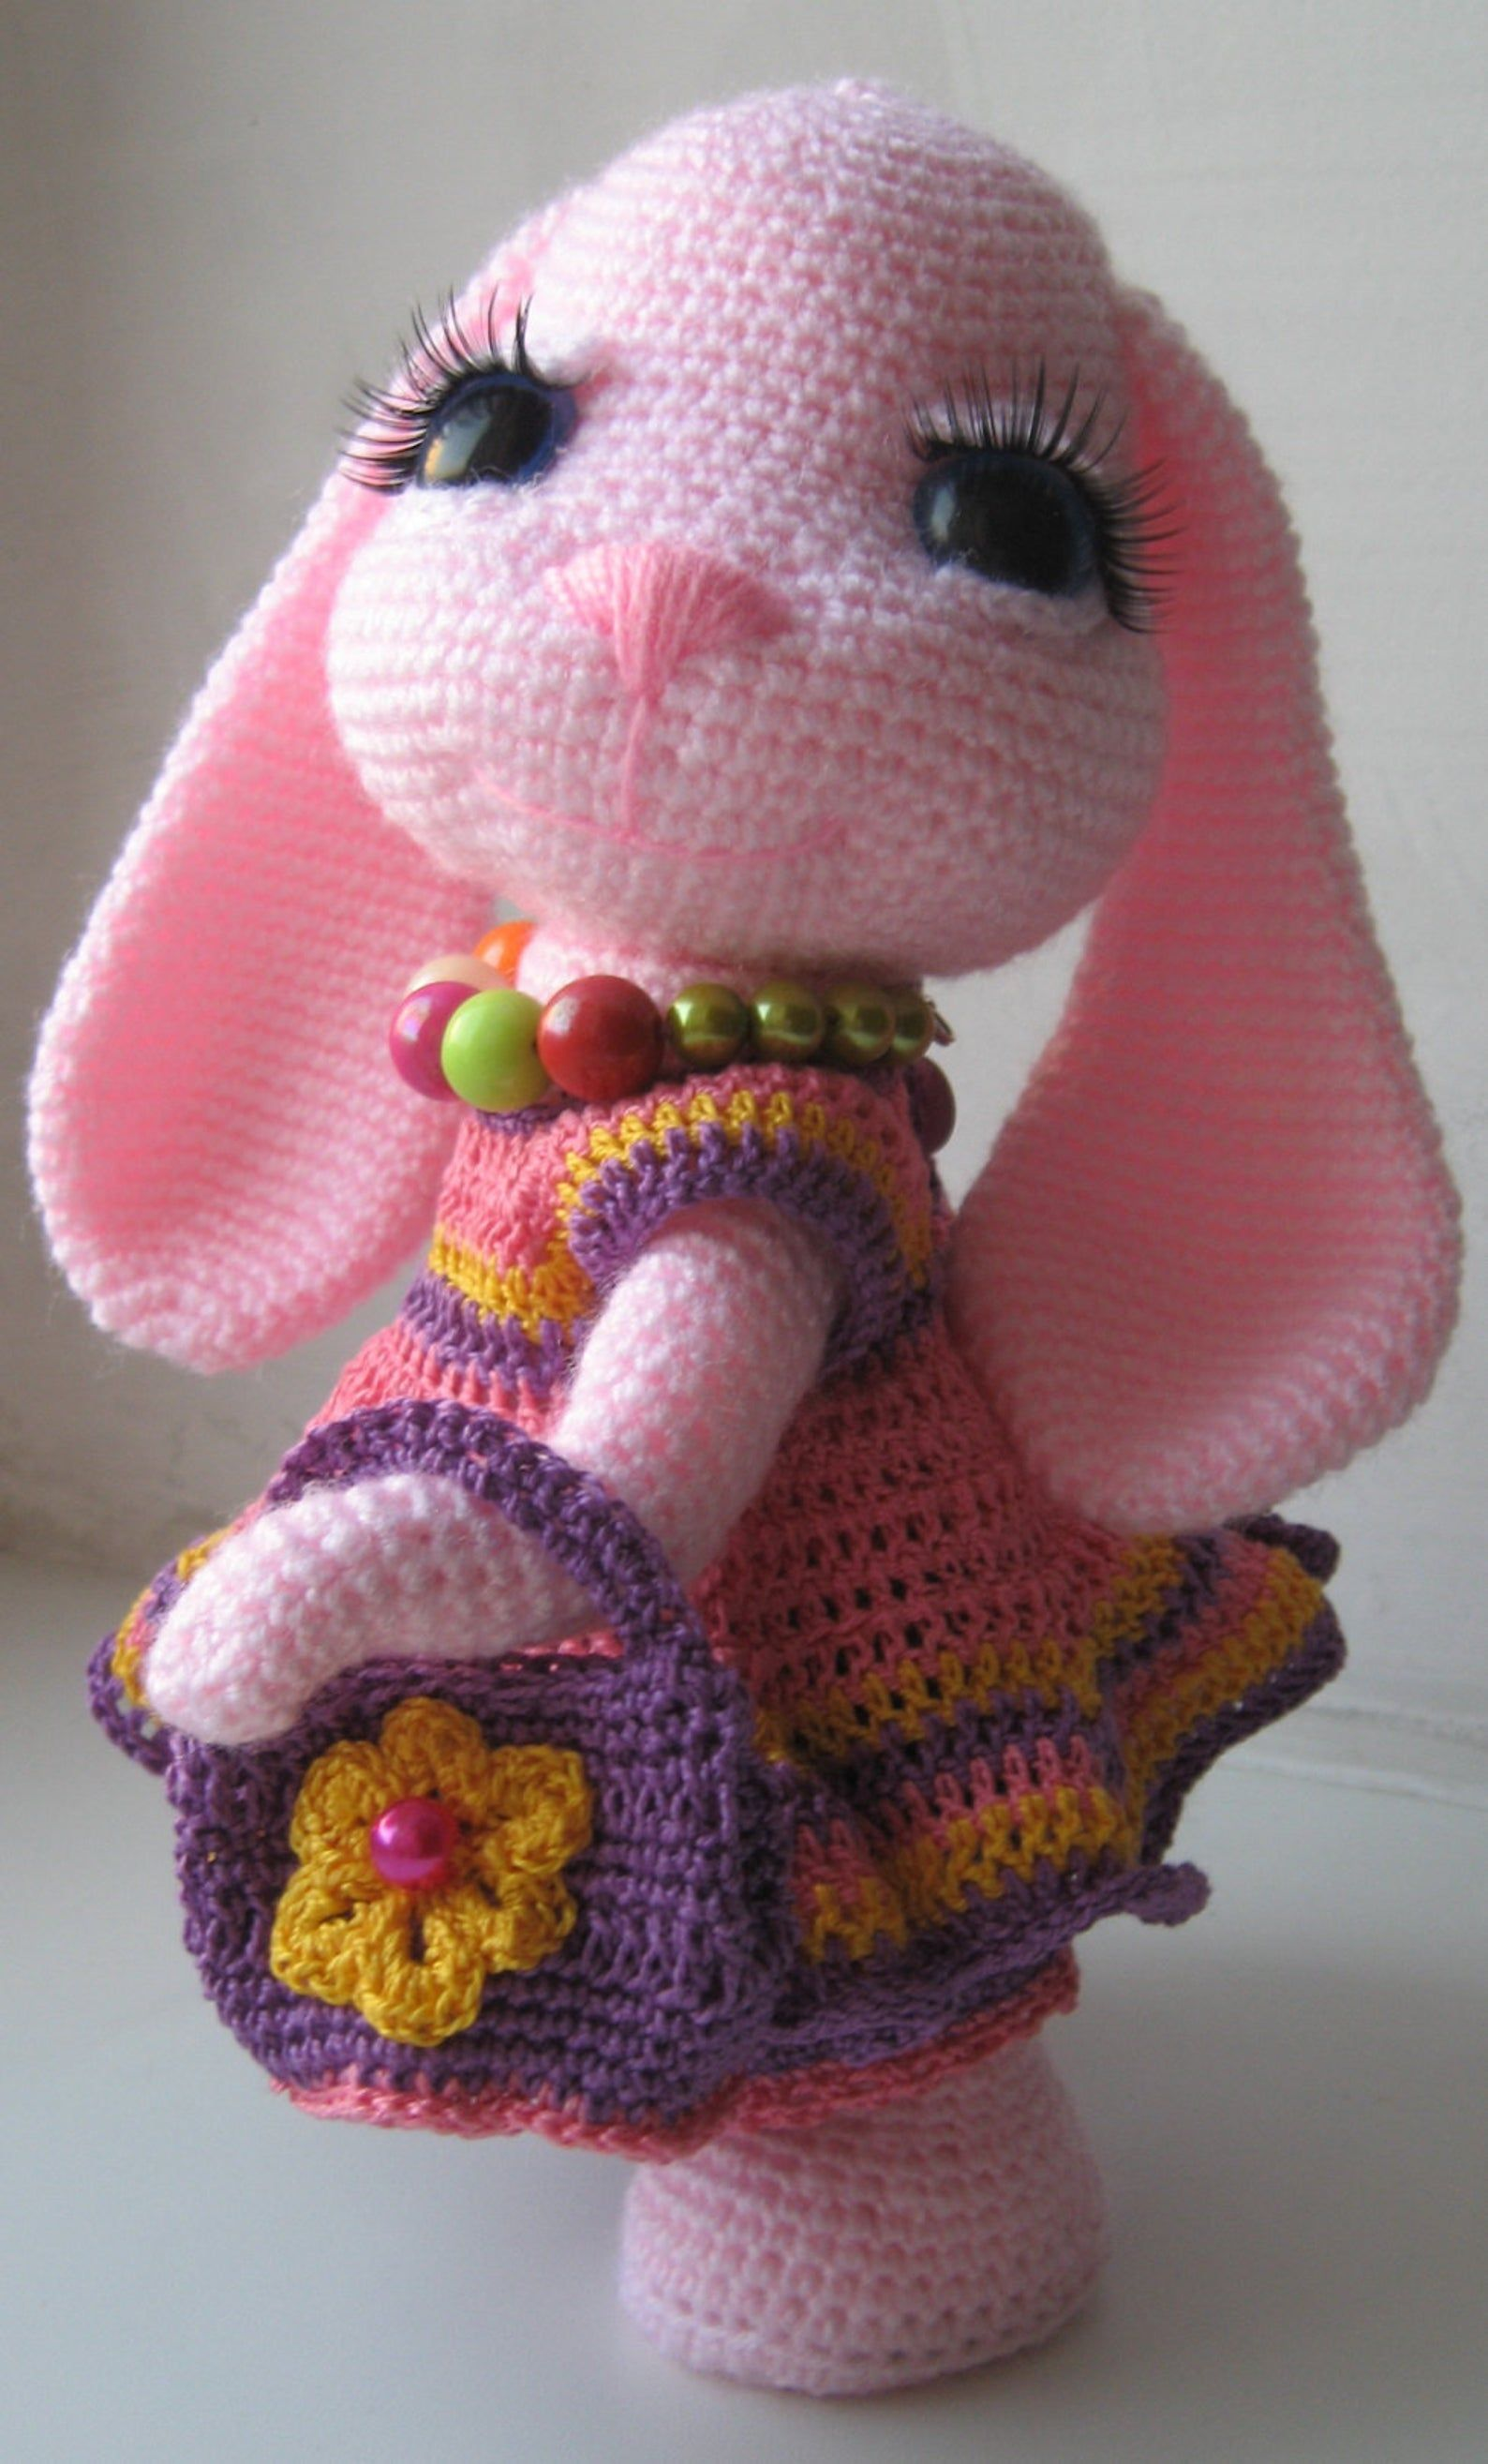 The Pretty Bunny Amigurumi Pattern will help you to create a crochet toy with a lot of cute details. This lovely amigurumi bunny is an ideal Easter gift!Pretty Bunny amigurumi in pink dress - Amigurumi TodayIf you are looking for a Bunny Crochet Free Patt